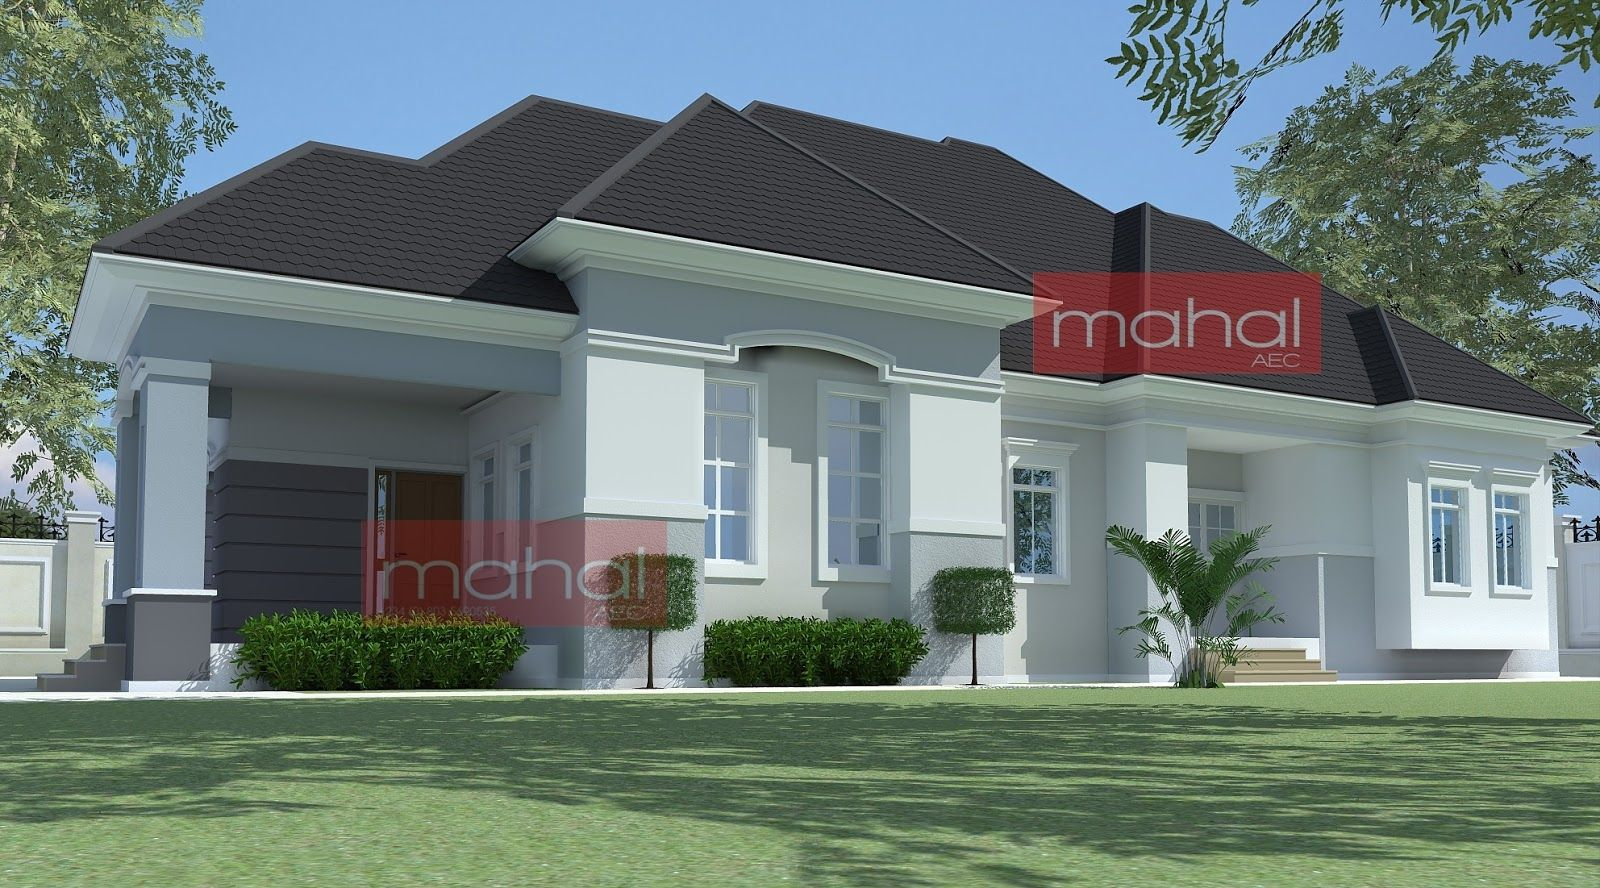 Contemporary Nigerian Residential Architecture Peter House 4 Bedroom Bungalow In 2020 House Roof Design Modern Roof Design Bungalow House Design